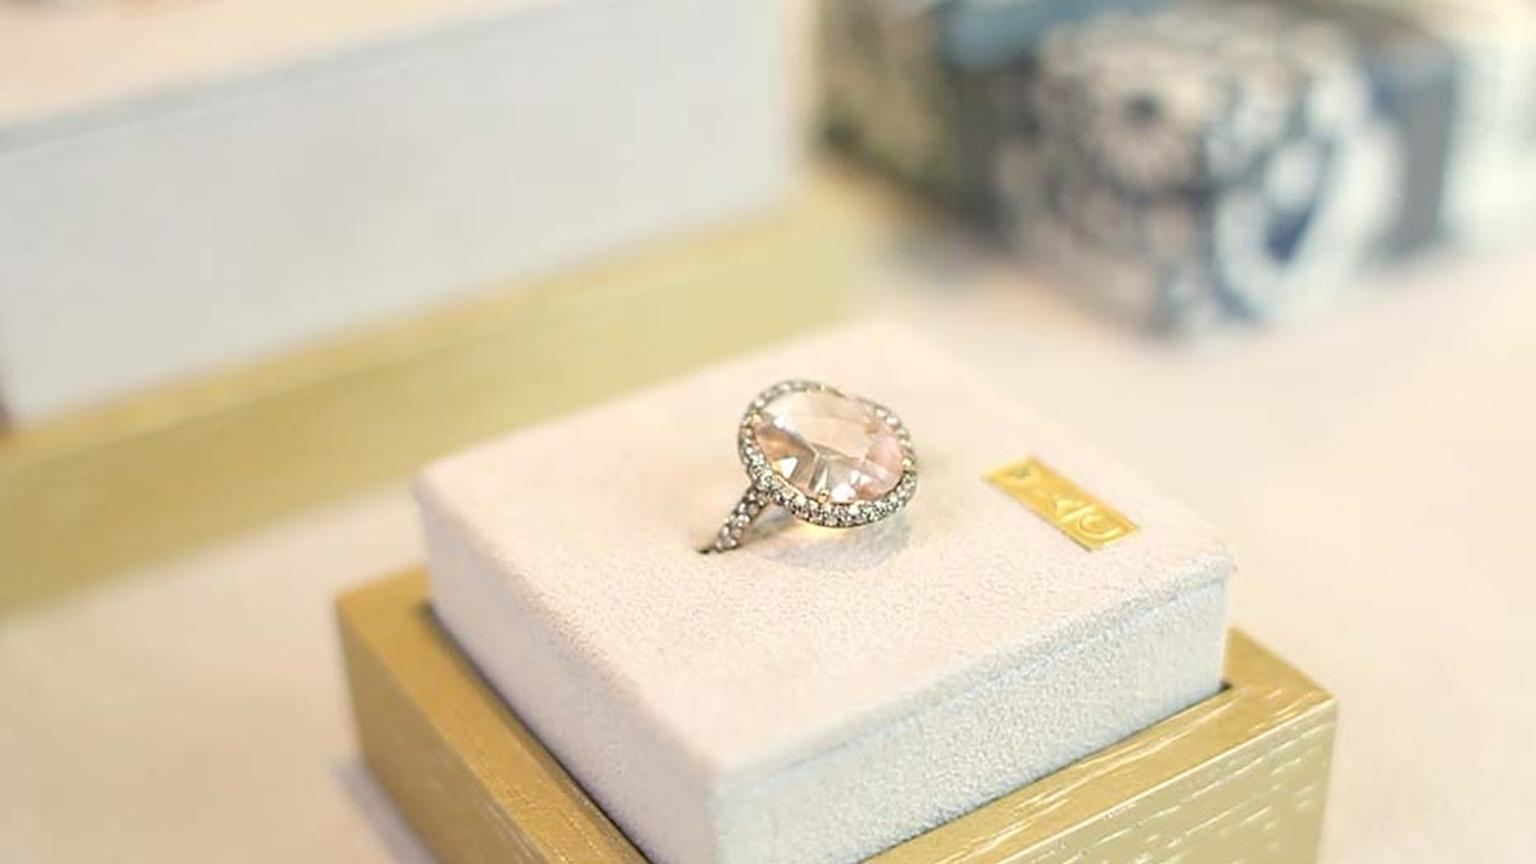 Astley Clarke's Fao collection ring with a centre morganite gemstone surrounded by a pavé of diamonds.